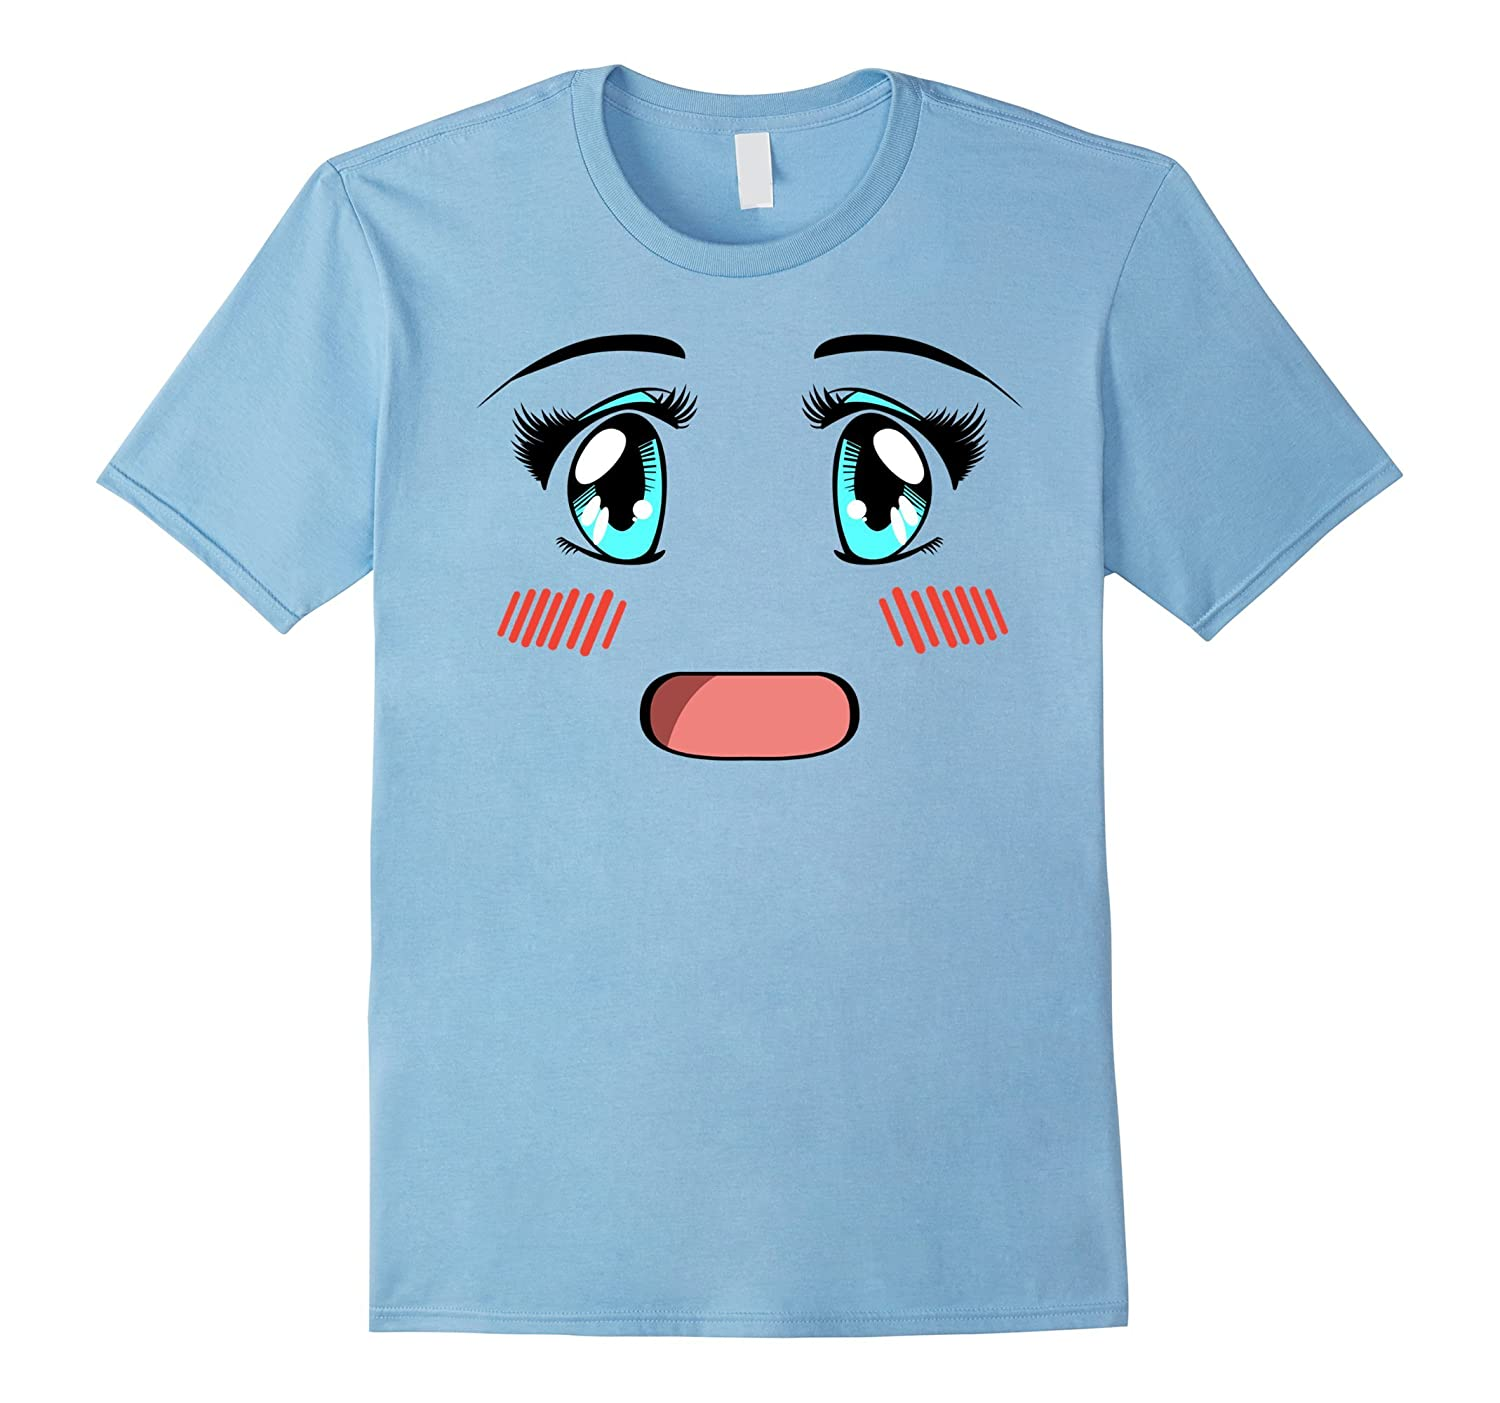 Cute Anime Girl Face T Shirt. Anime Manga Lover Gifts-Protee